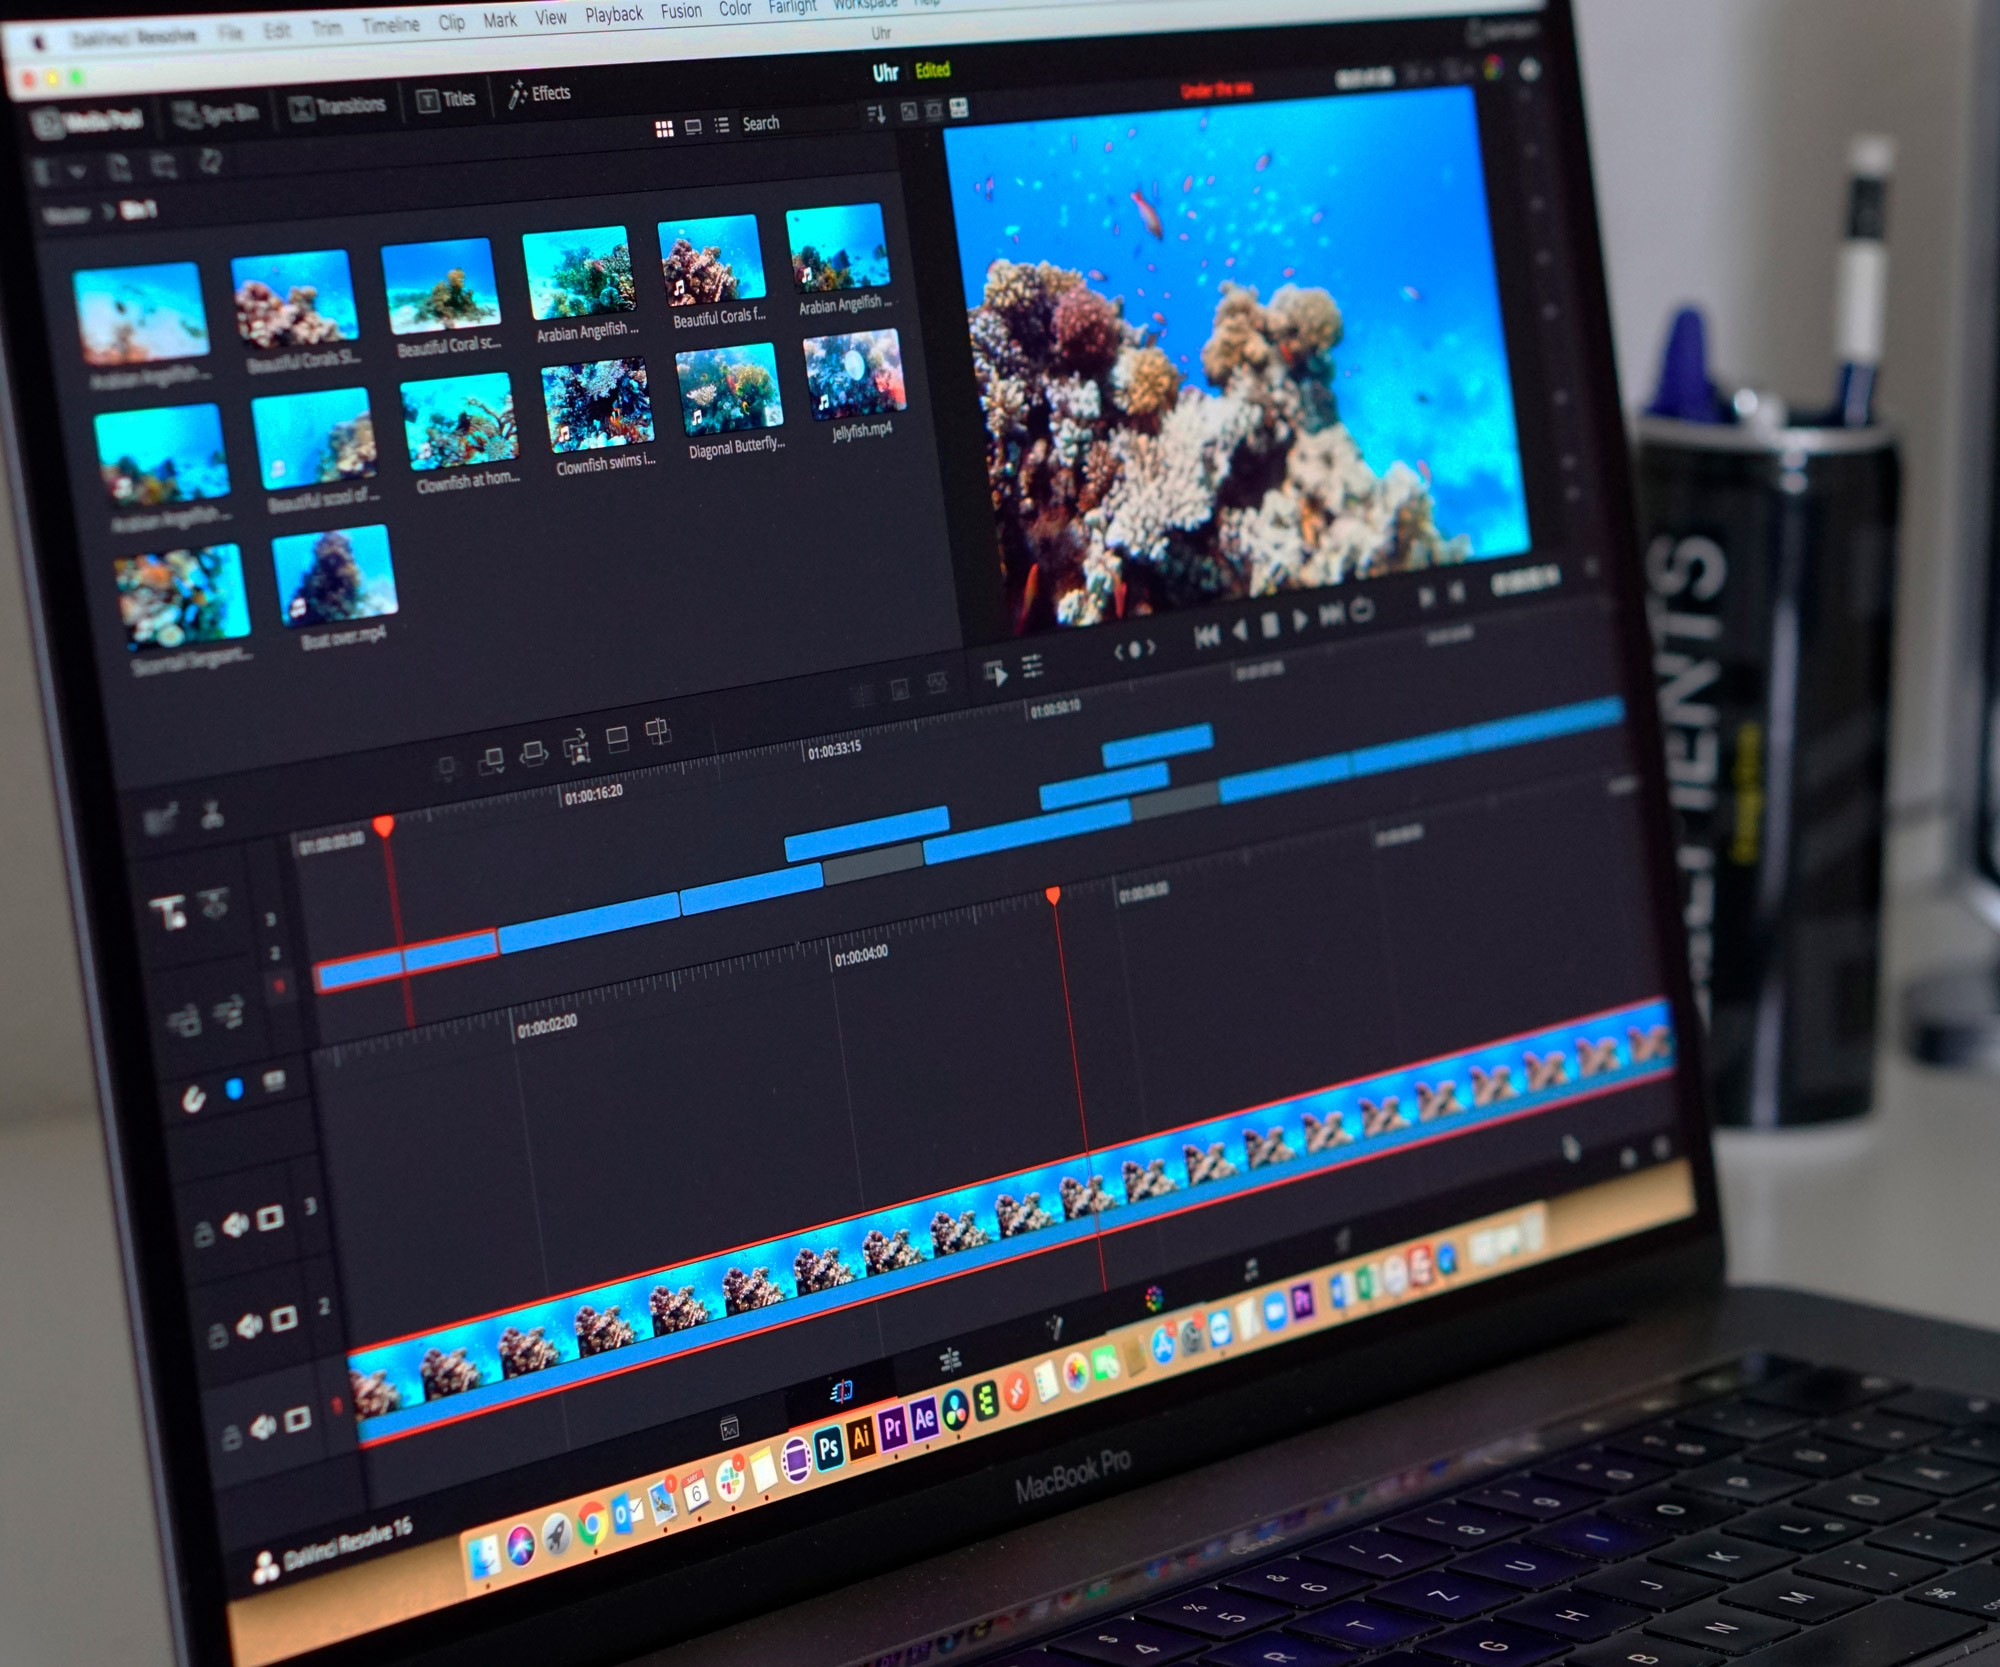 Blackmagic Design Steps Up Their Nle Game With Davinci Resolve 16 By Elements Medium